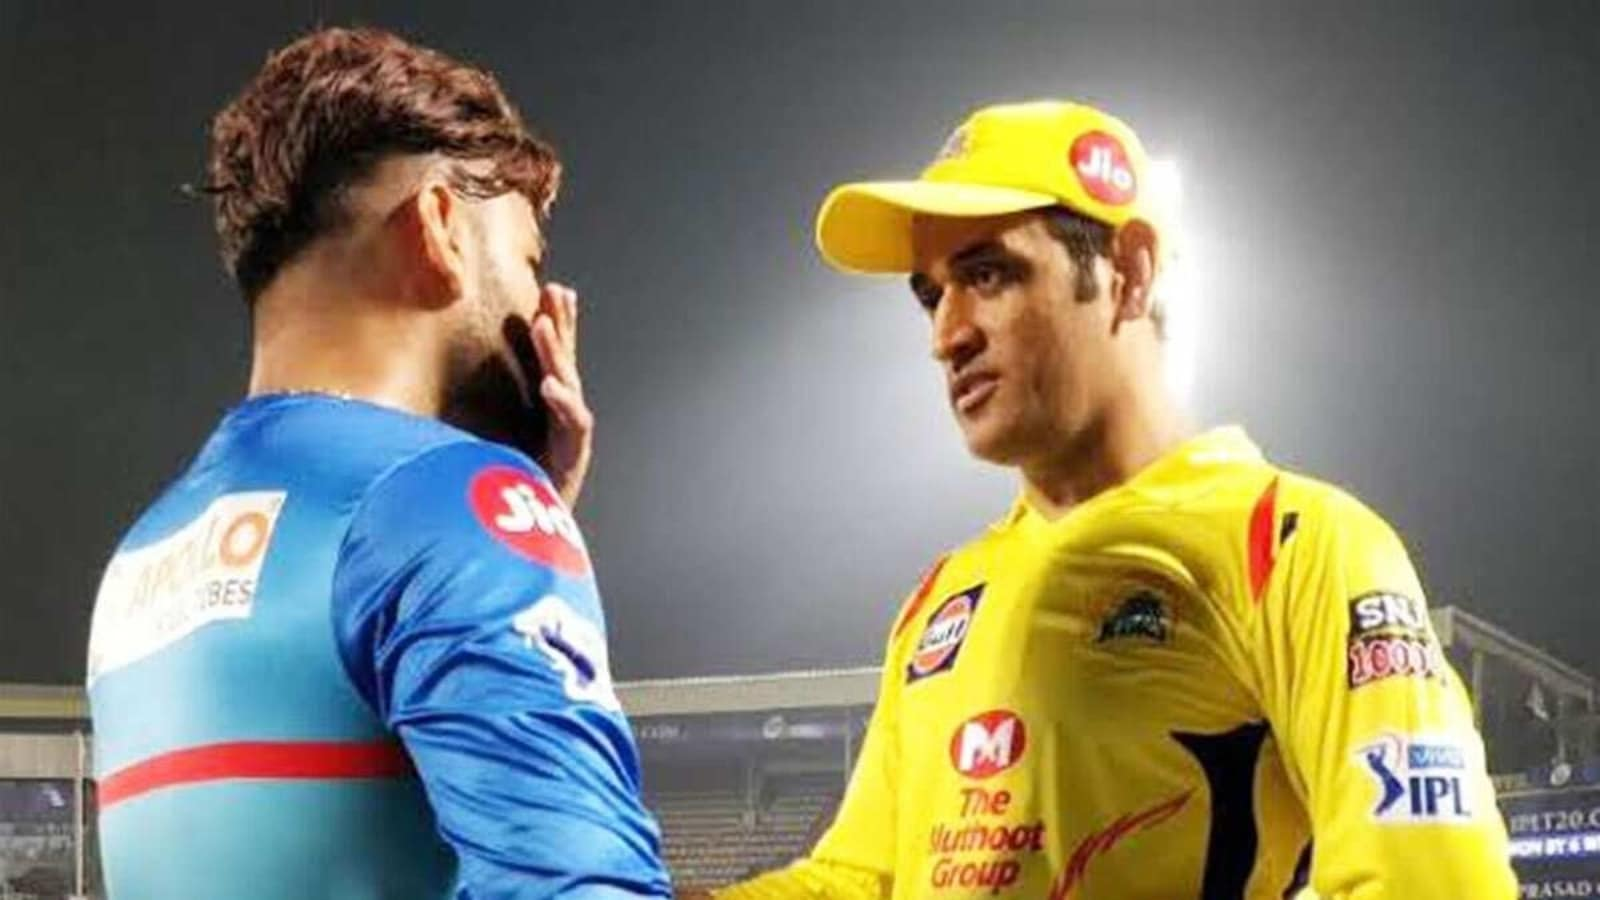 Gavaskar's advice to Pant ahead of IPL 2021 clash: 'Don't allow MS Dhoni to put his arms around your shoulders' - Hindustan Times